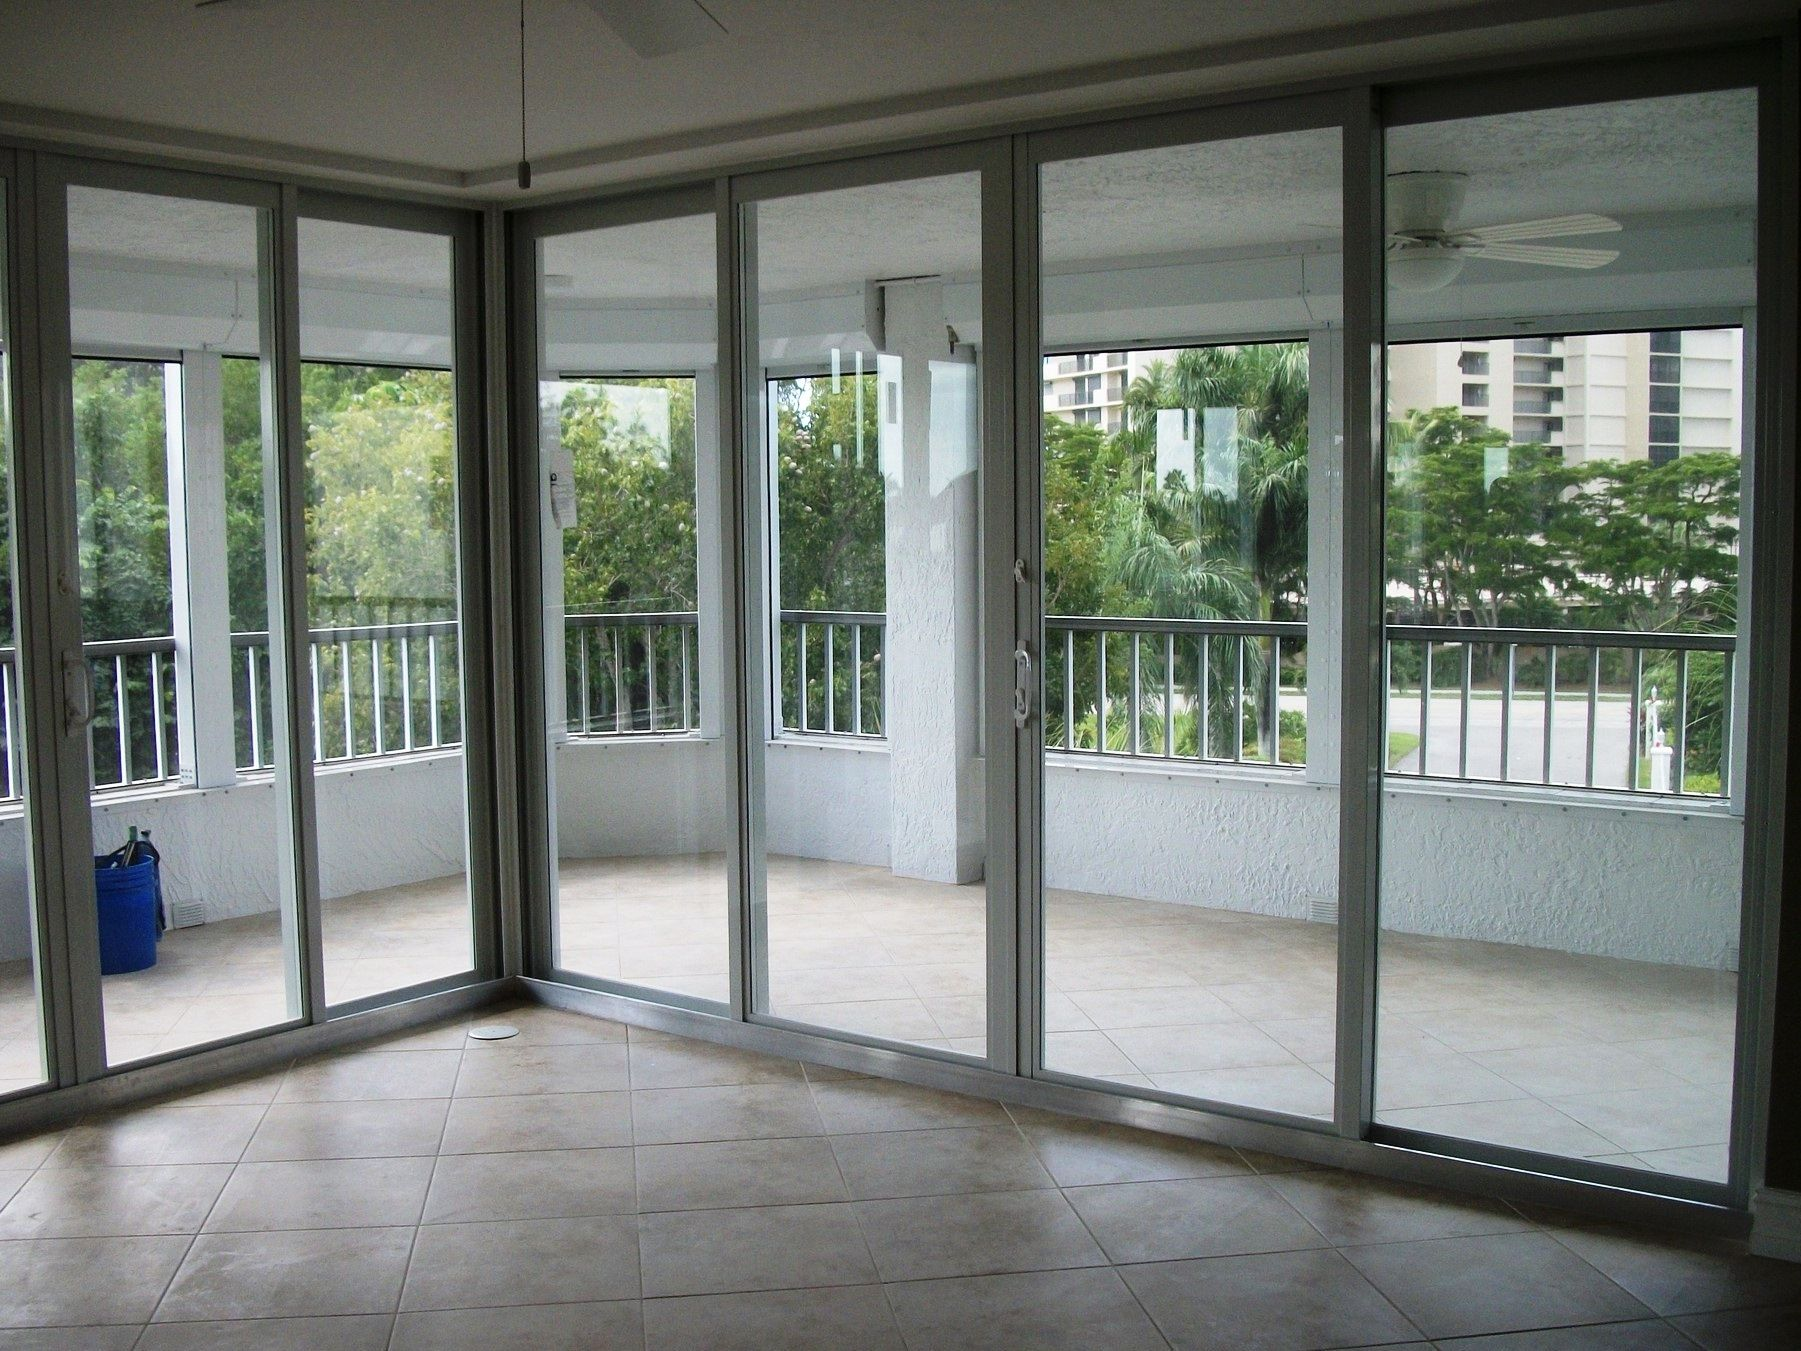 Pgt corner sliding glass doors httptogethersandia pinterest pgt corner sliding glass doors planetlyrics Image collections